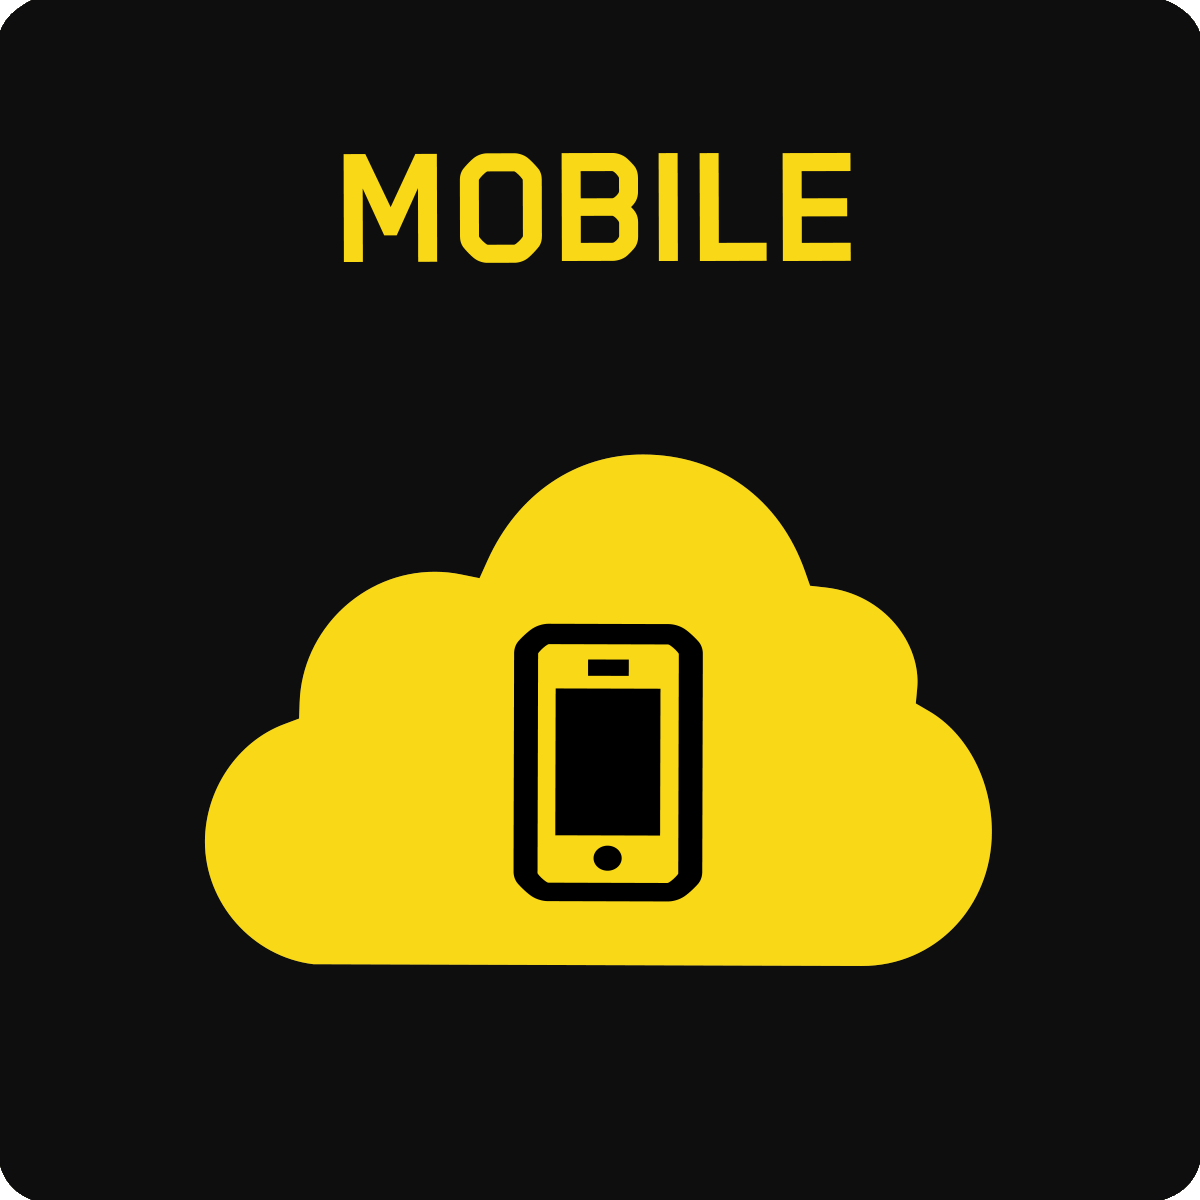 Mobile cloud communications